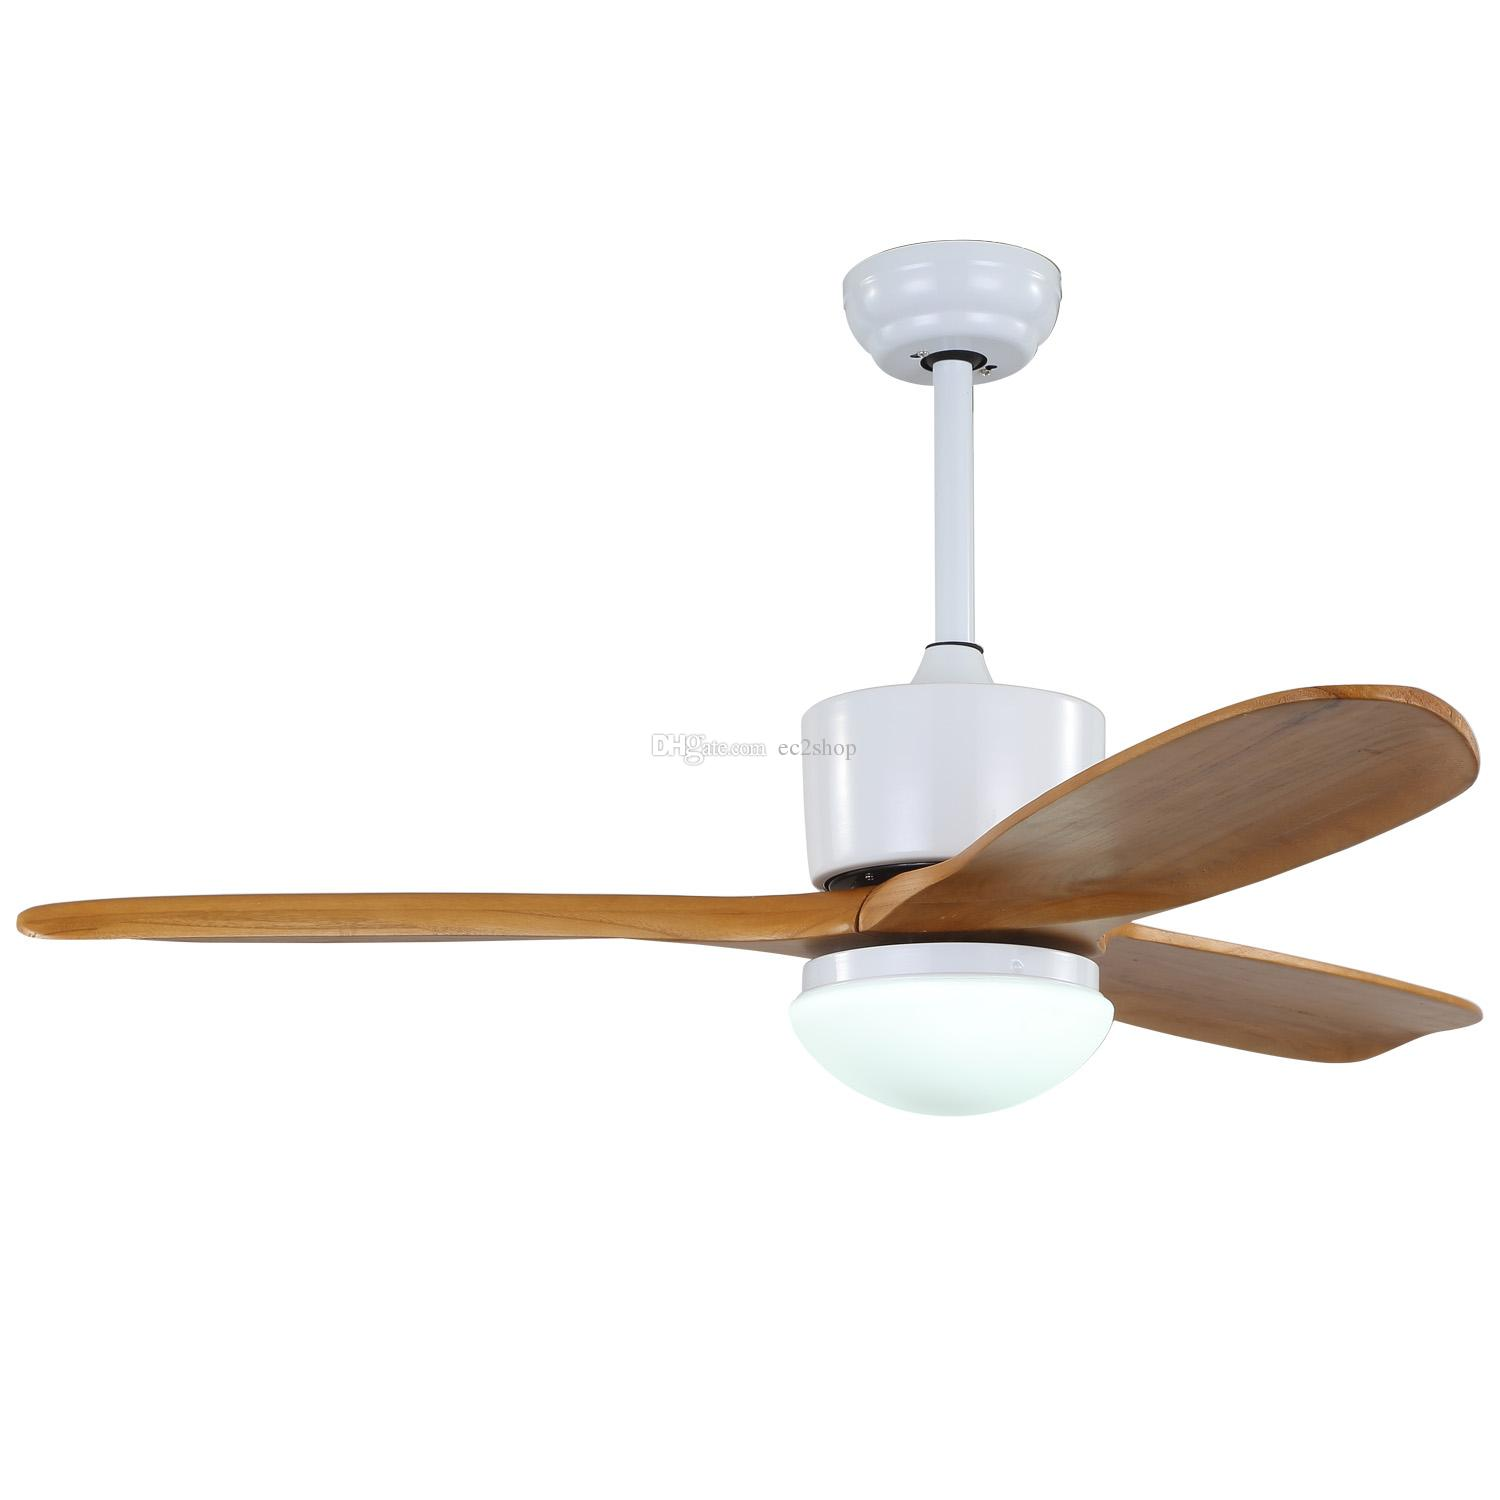 2018 china 48 inch best ceiling fan with light and remote control ac 2018 china 48 inch best ceiling fan with light and remote control ac dc for bedroom living room on sale from ec2shop 1207 dhgate aloadofball Images